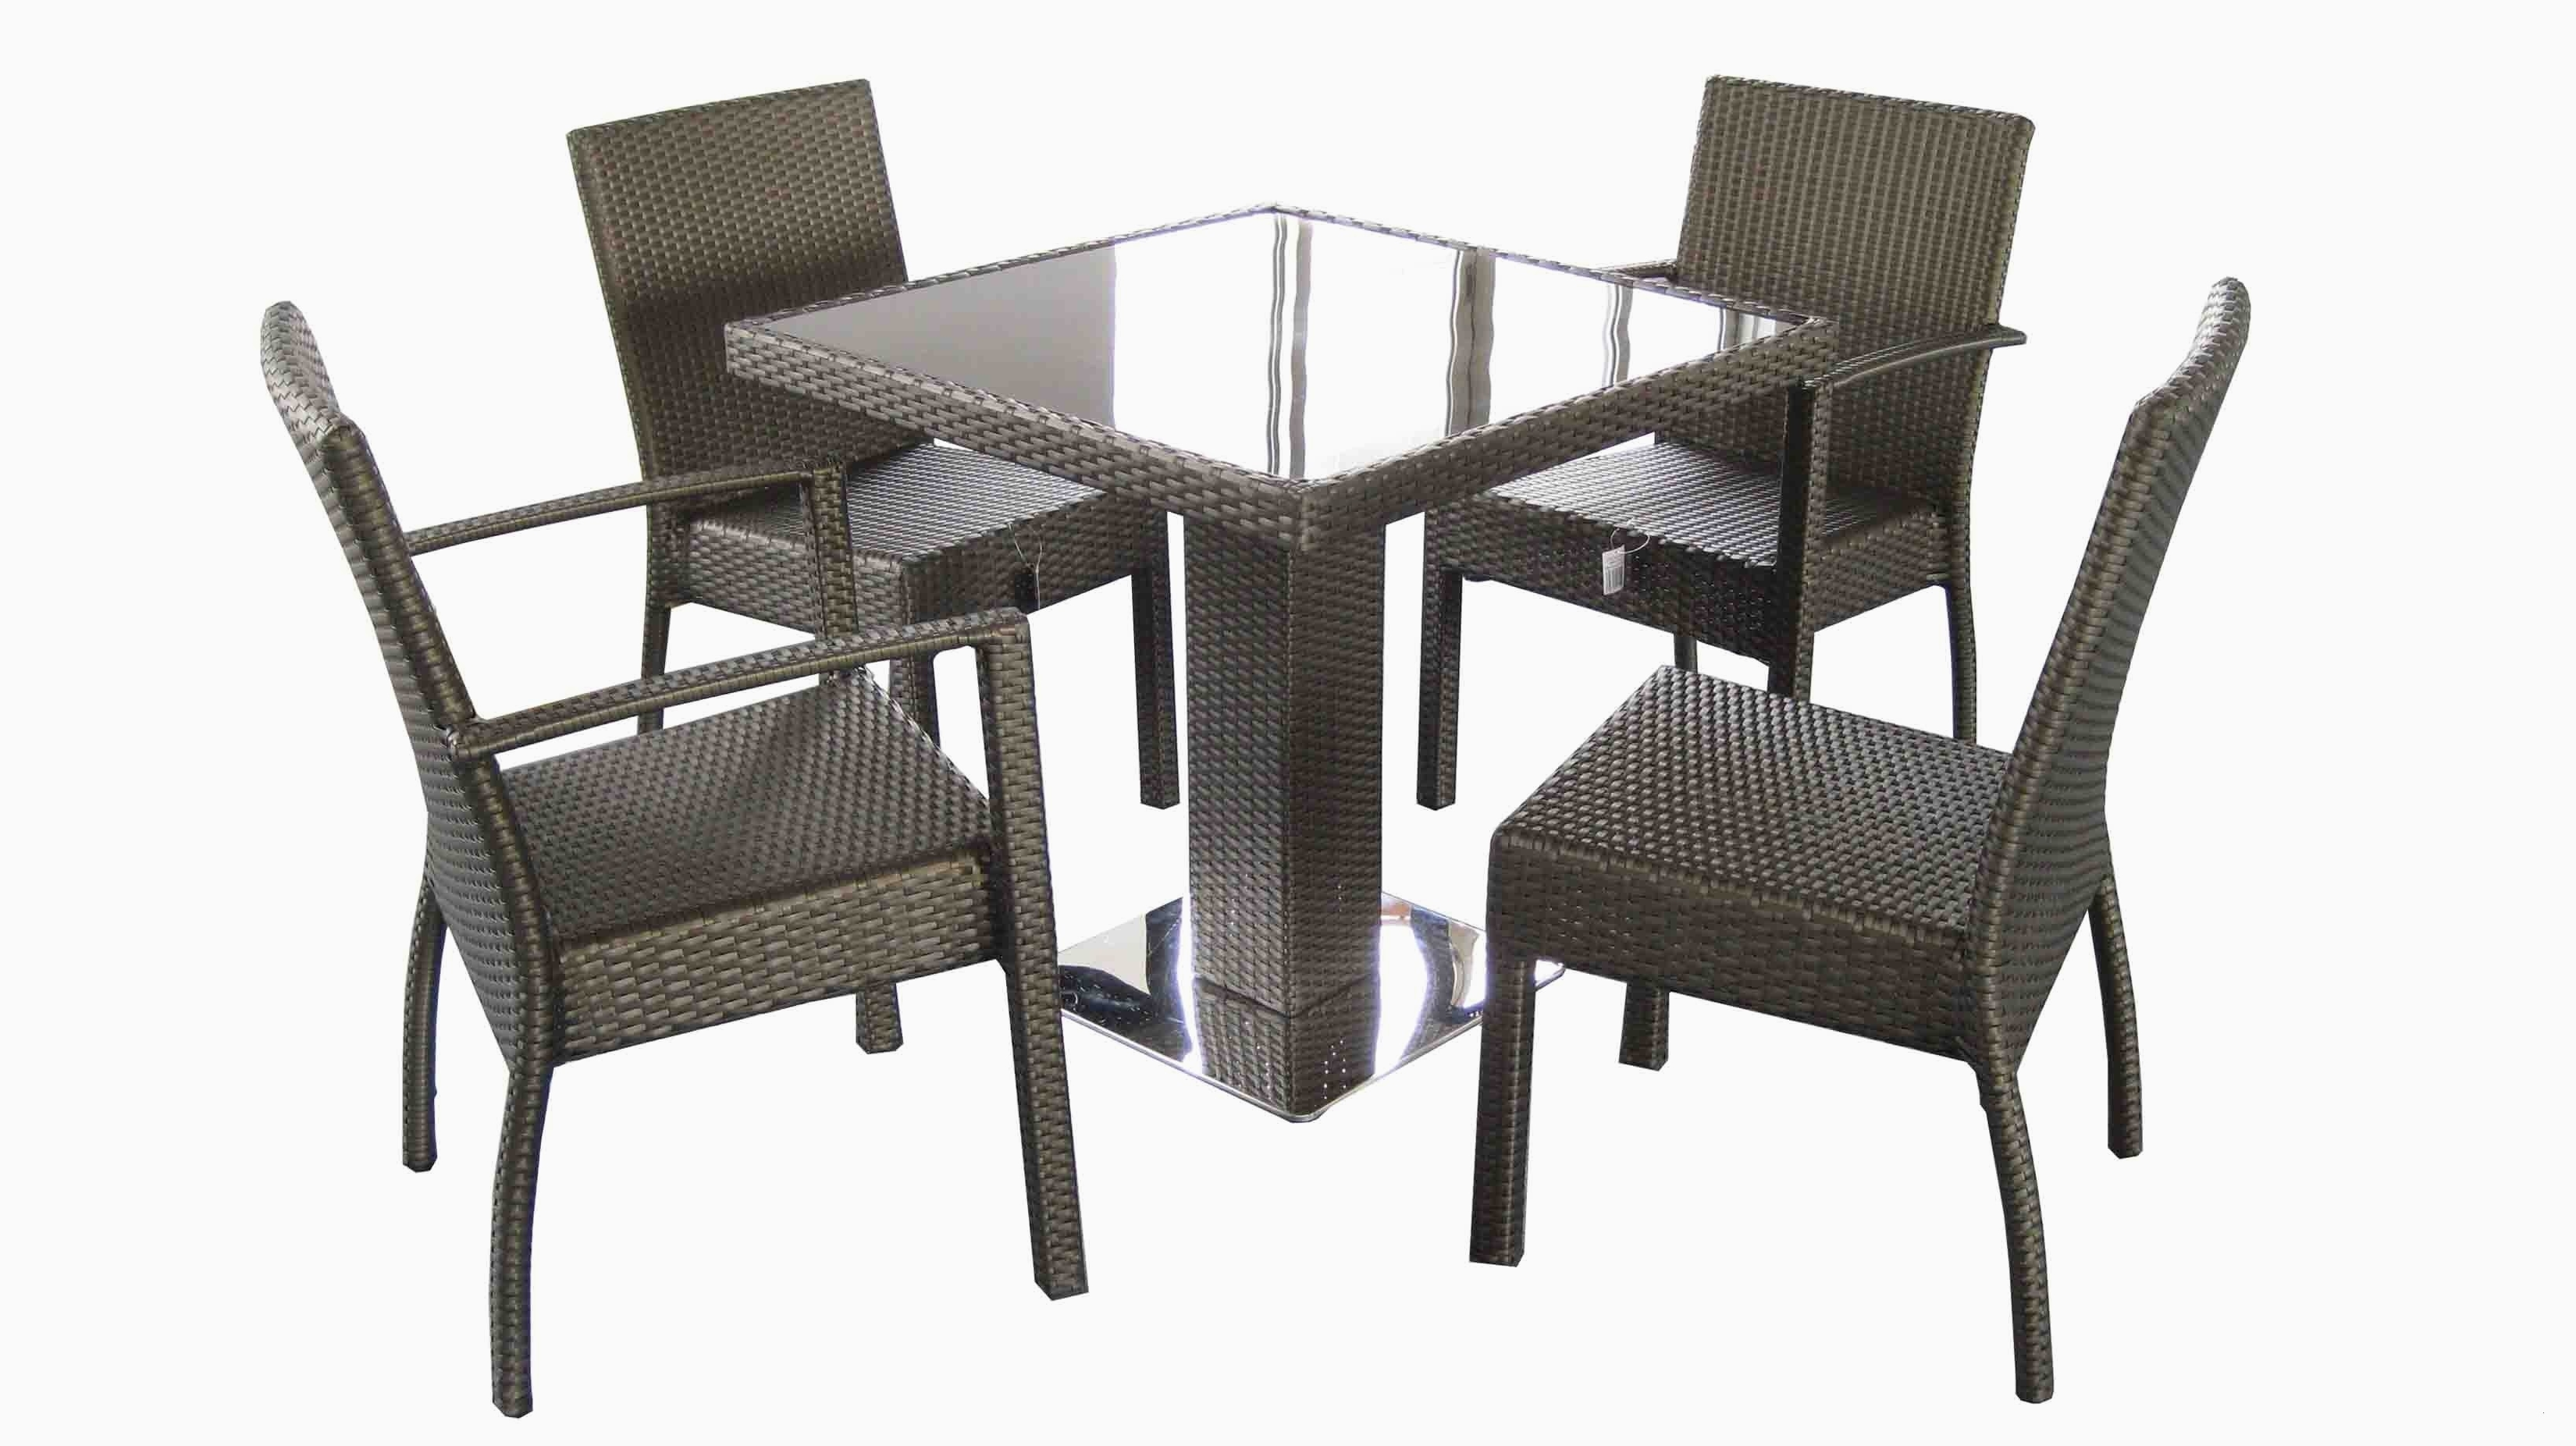 Plastic Patio Table And Chairs Best Of 24 Liveable Rattan Dining Throughout Most Current Rattan Dining Tables And Chairs (View 8 of 25)